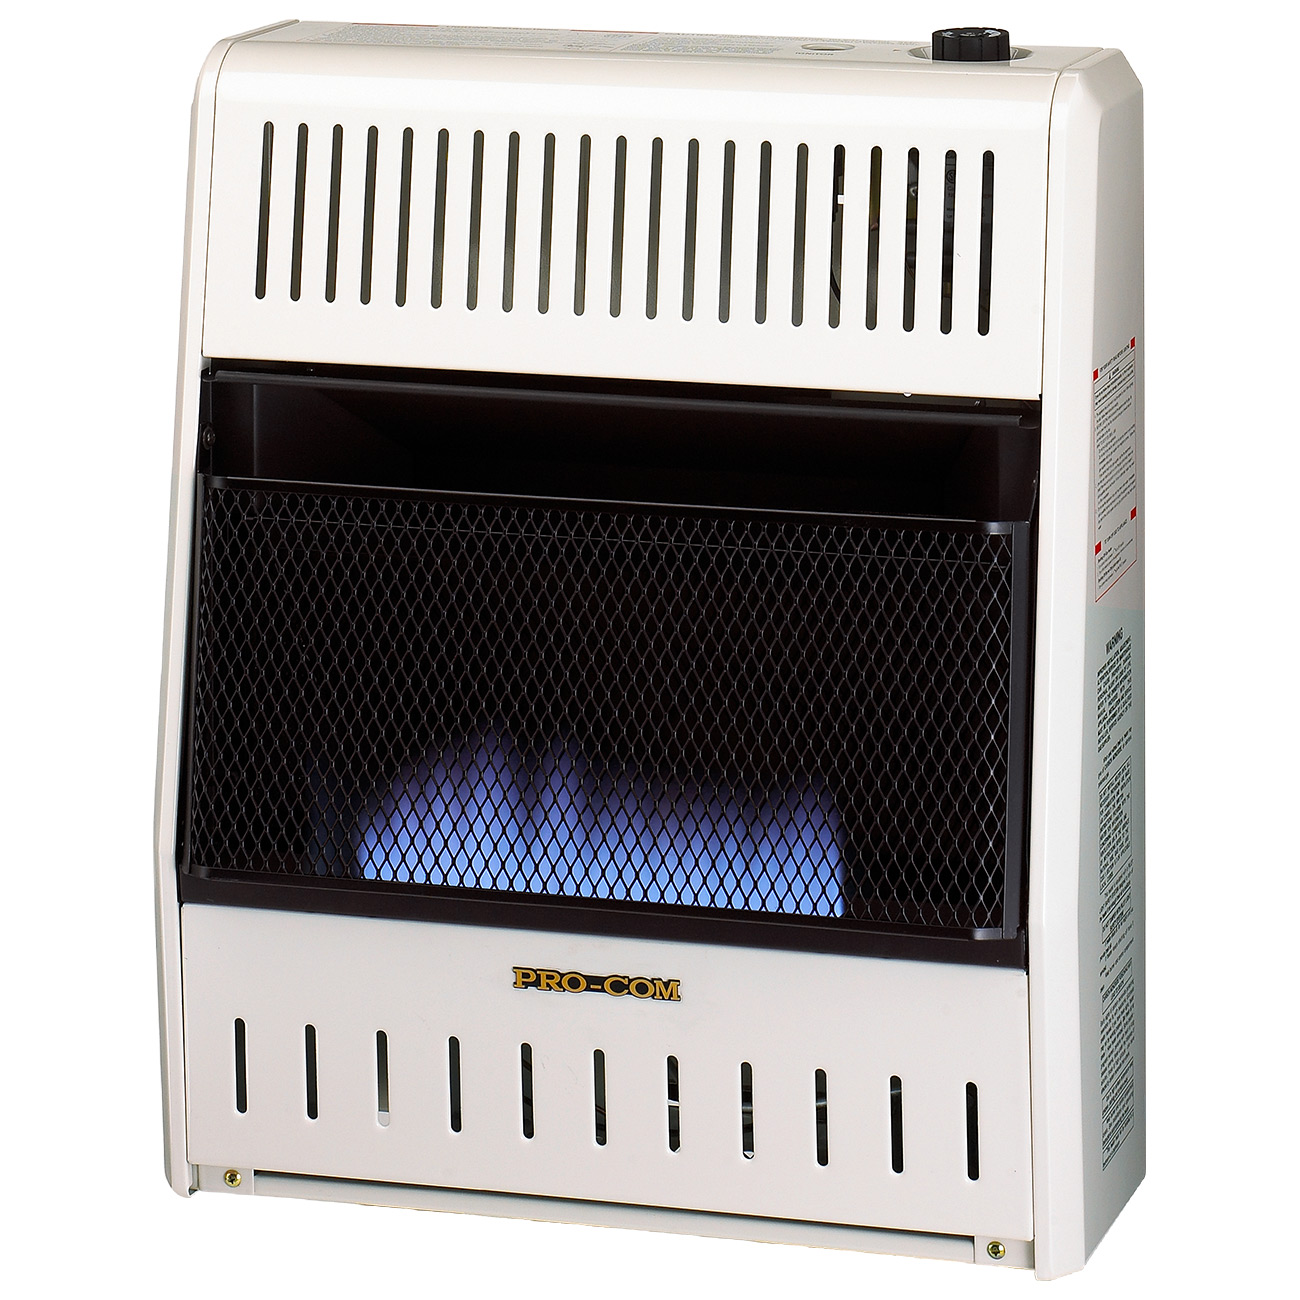 Ventless blue flame propane gas wall heater 20 000 btu for Best propane heating systems